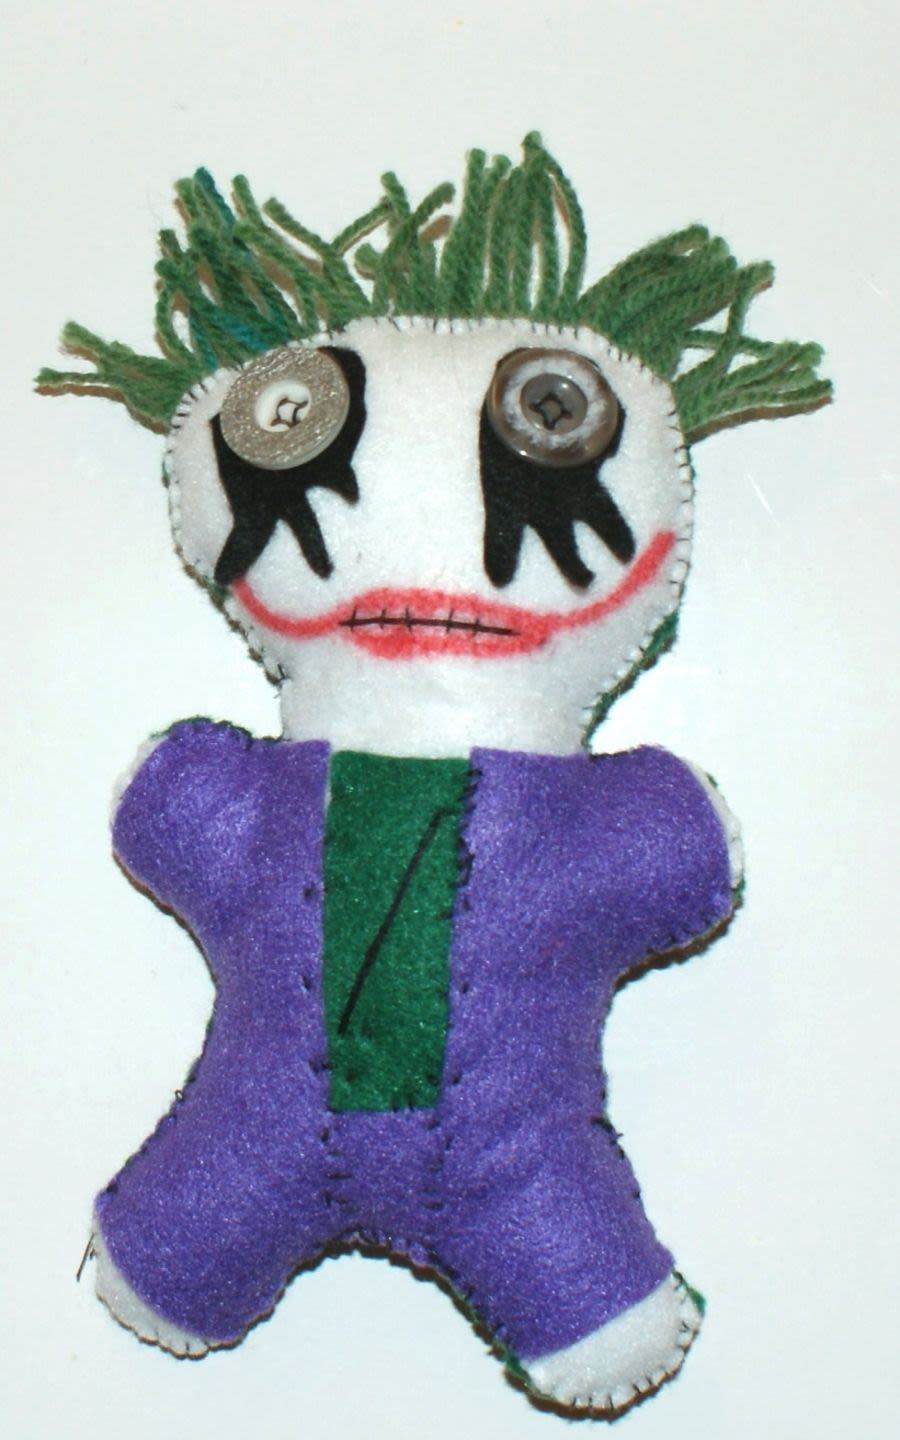 The Joker Voodoo Doll